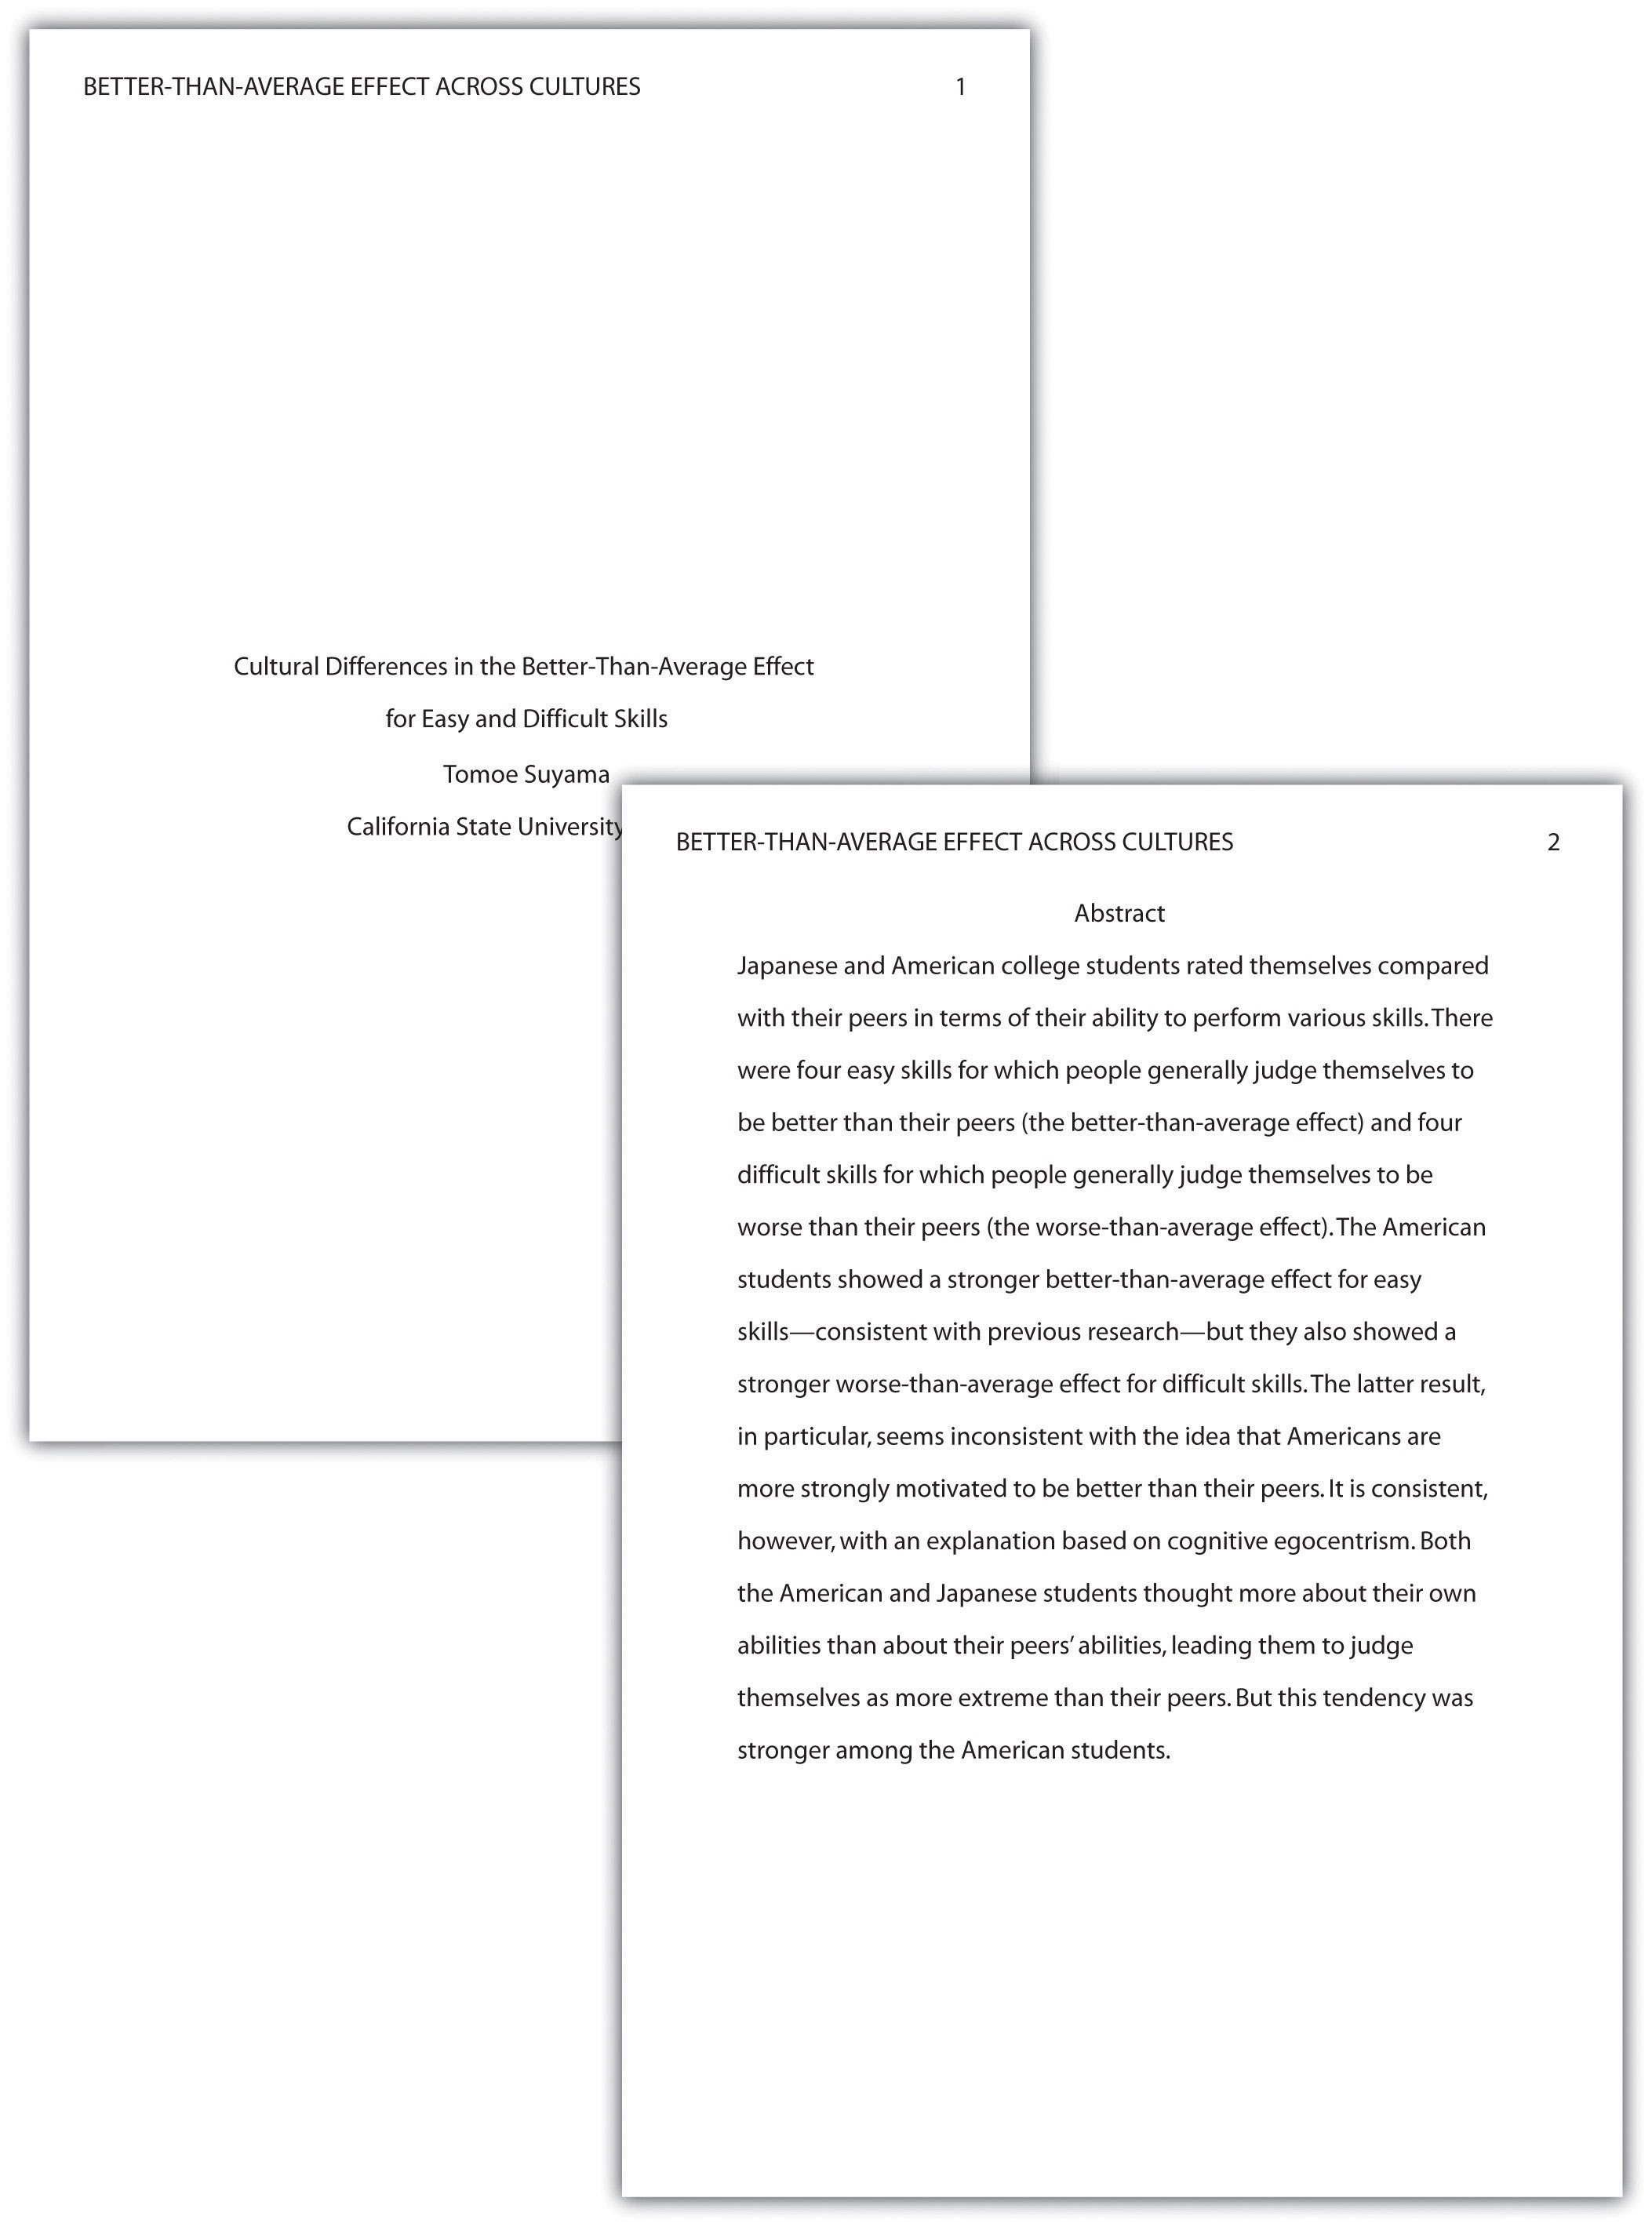 apa style essay paper nowservingco how to use the template for writing papers in apa format